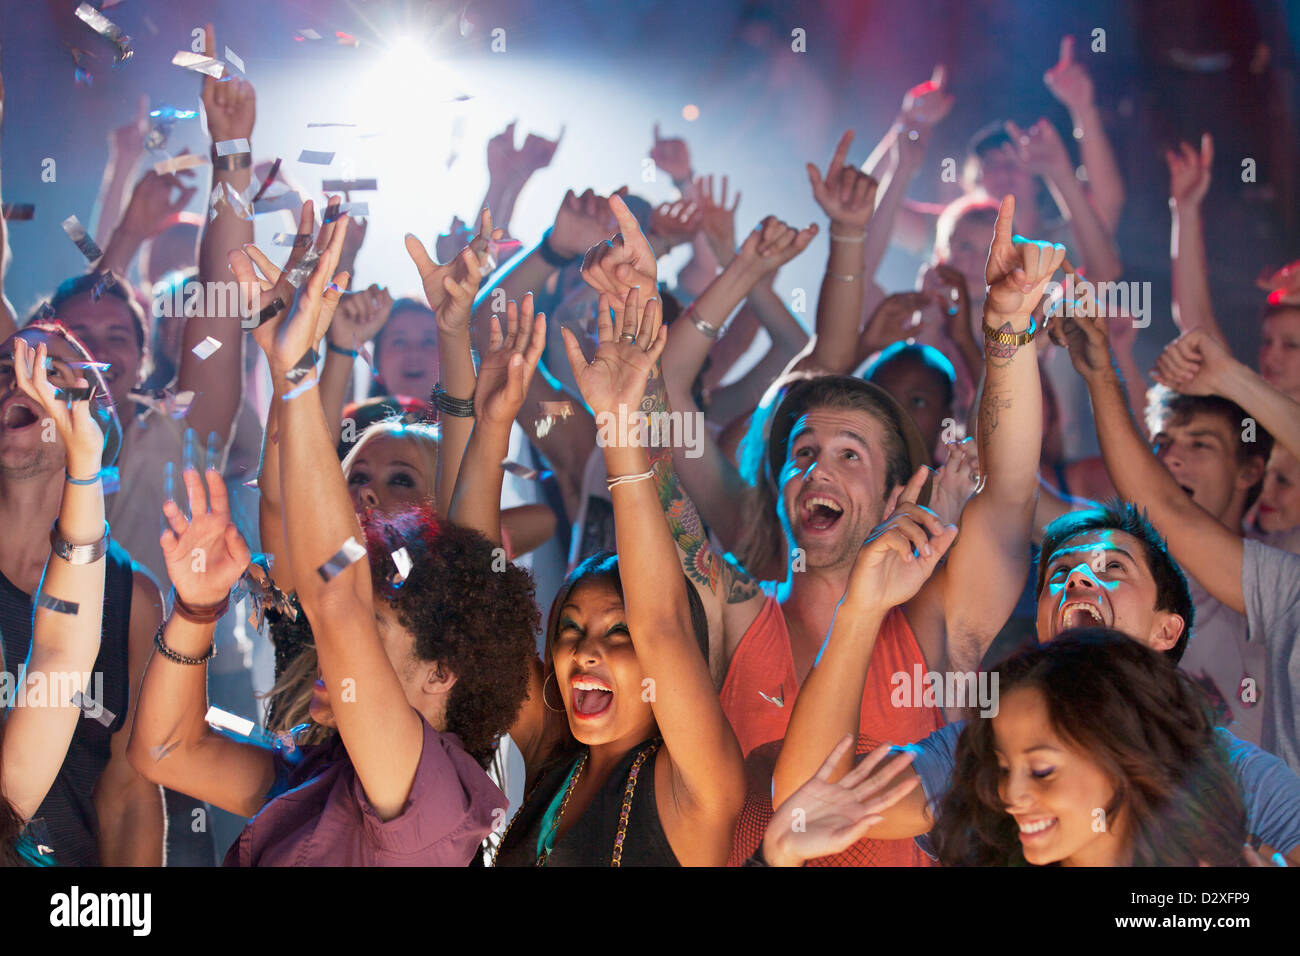 Enthusiastic crowd cheering at concert - Stock Image